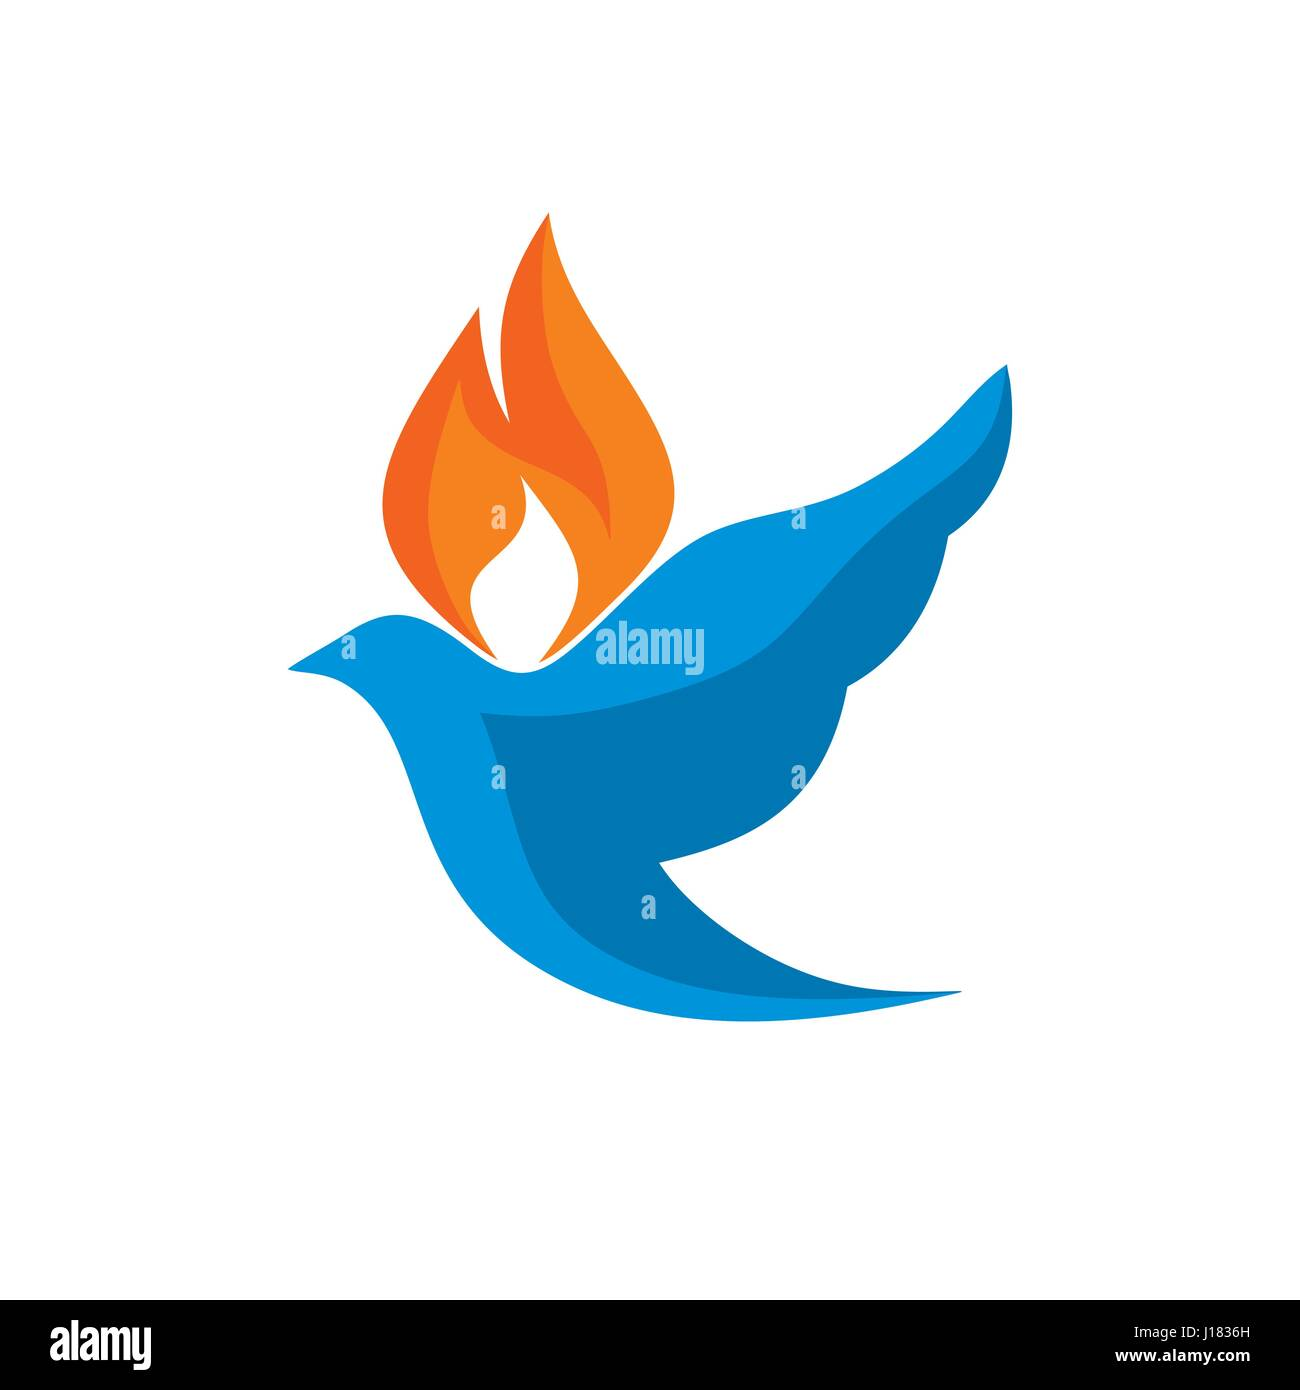 Dove and flame are symbols of the holy spirit stock vector art dove and flame are symbols of the holy spirit biocorpaavc